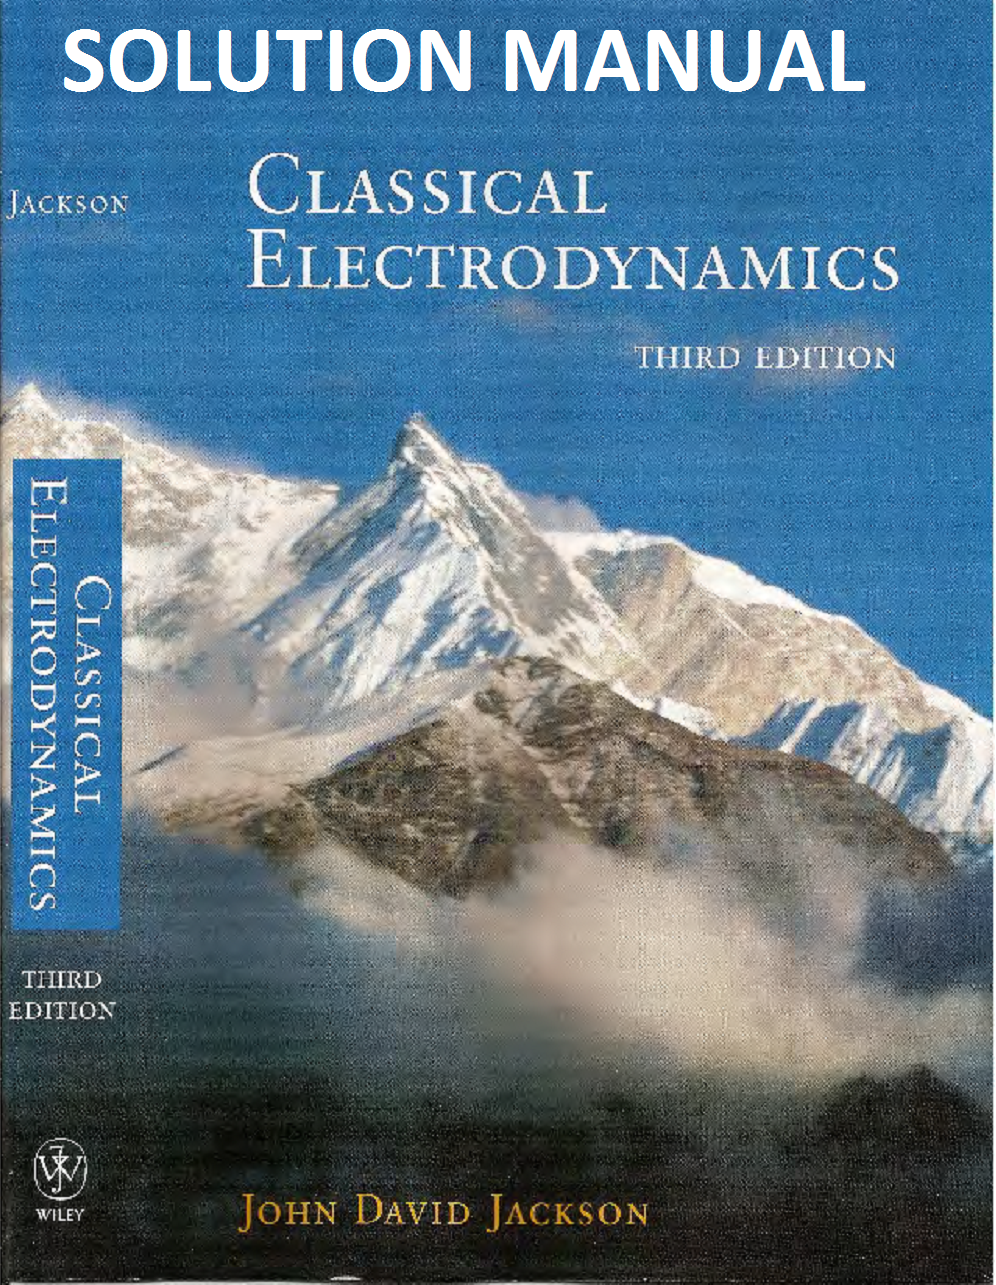 SOLUTION MANUAL : CLASSICAL ELECTRODYNAMICS 3rd edition by JOHN DAVID  JACKSON